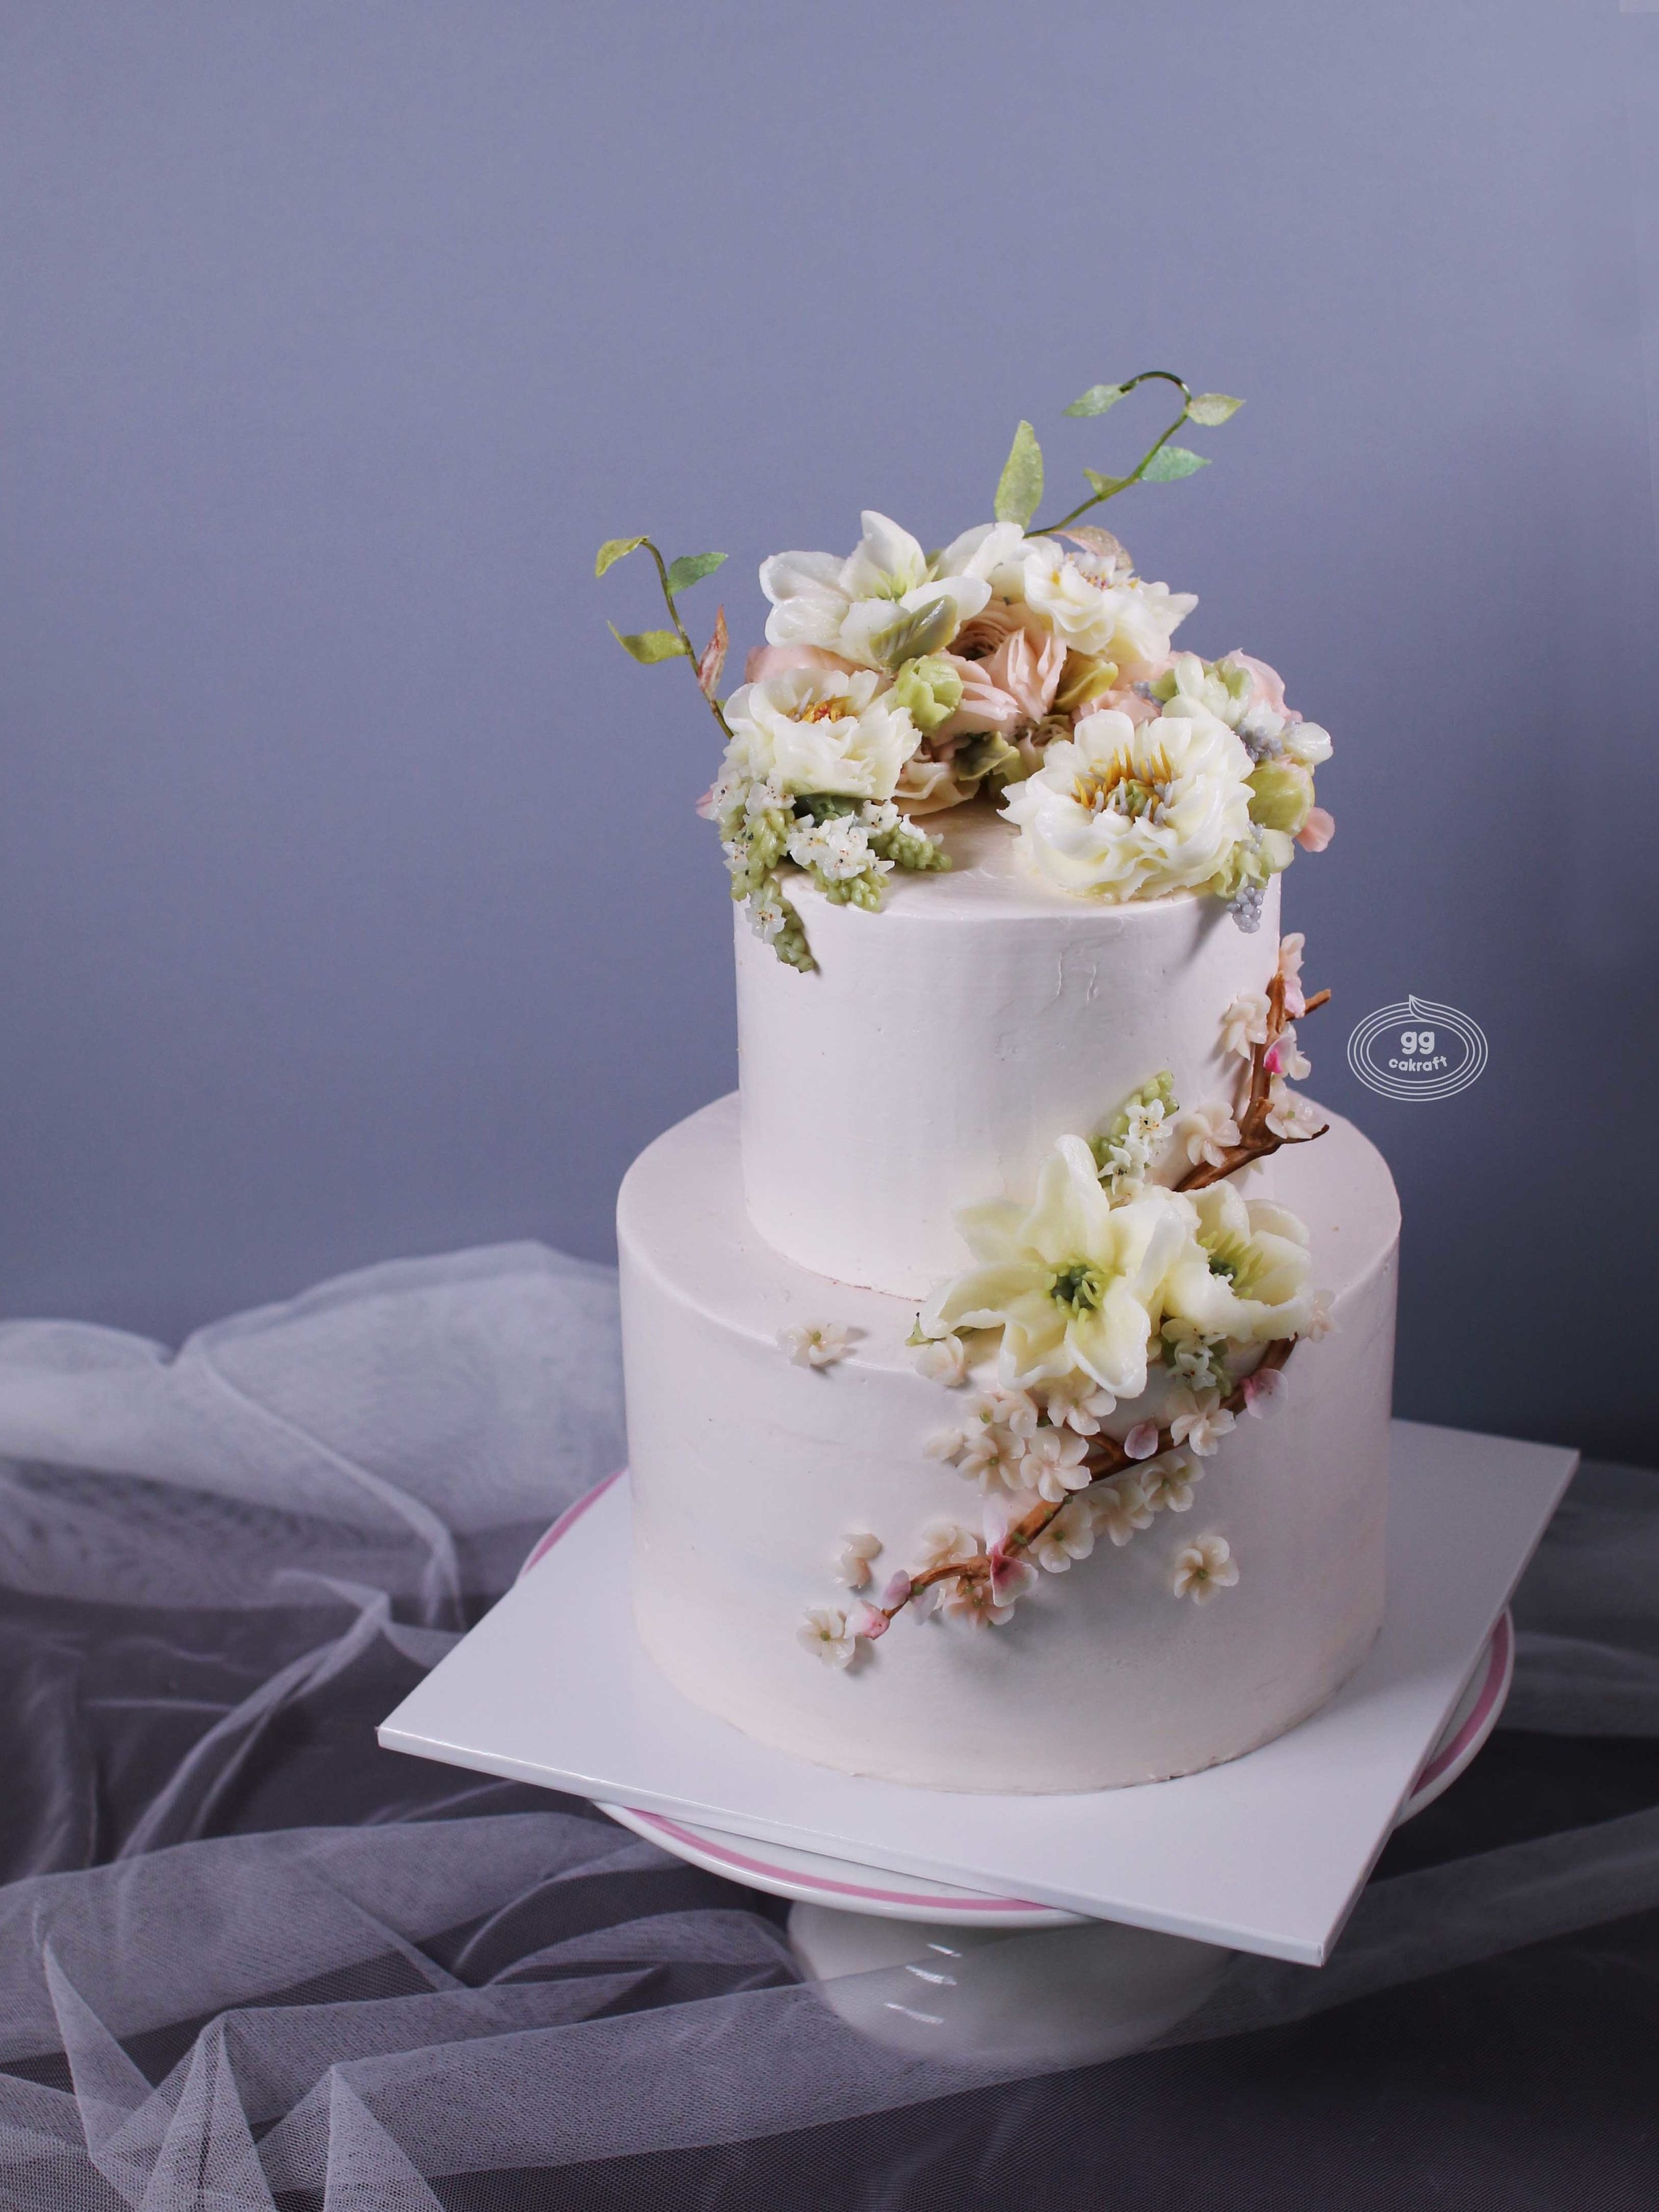 Day 2. Haute Couture Wedding Cake (dummy + real cake)   - Flower piping : Opened Peony, Ranunculus, Lily, Cherry Blossom, 3D Branch.